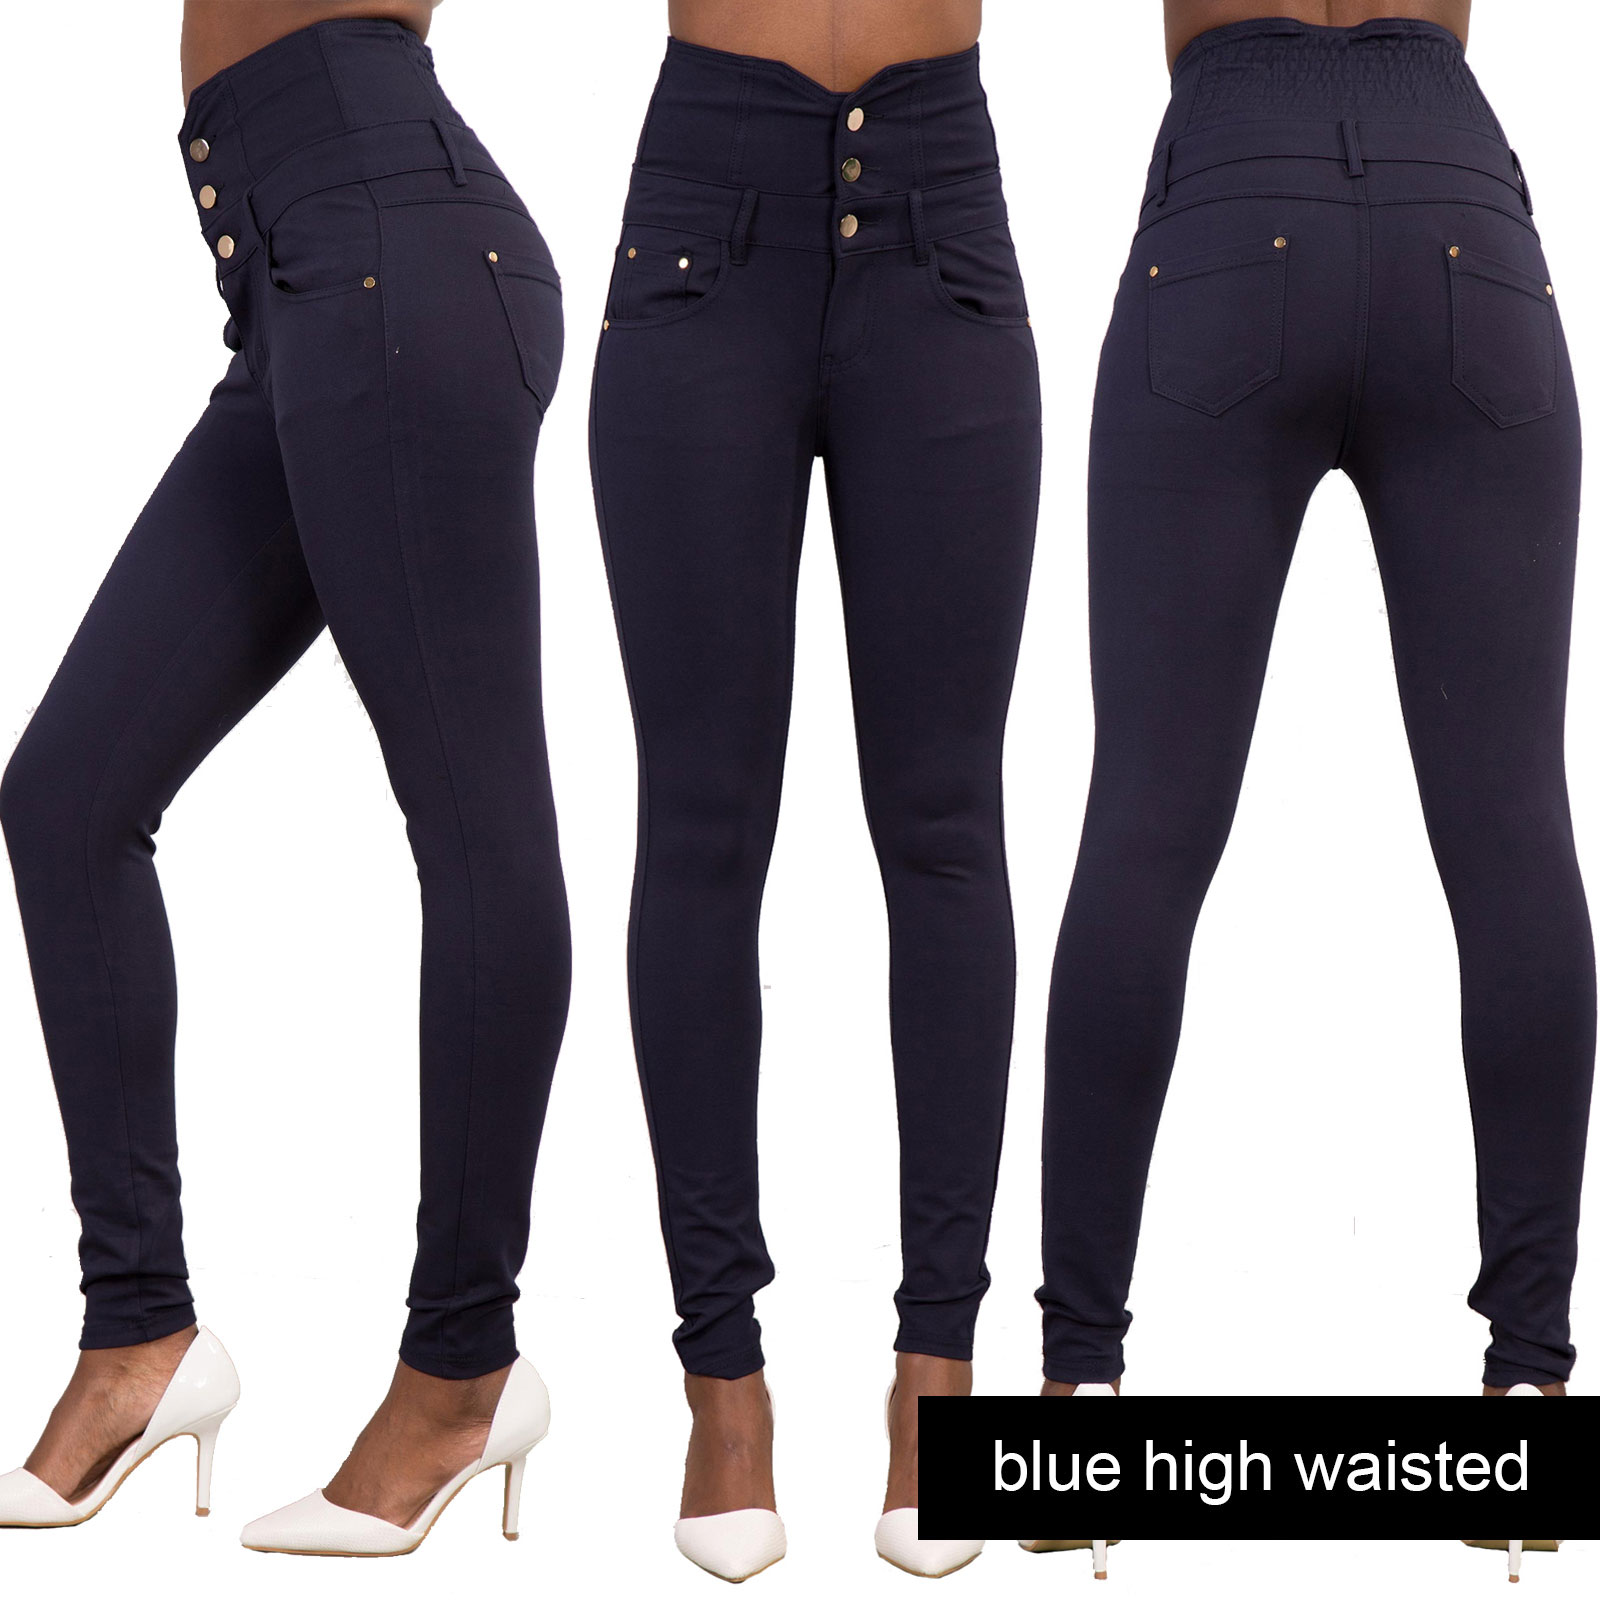 Find women's jeans for work and play. Women's jeans are a wardrobe staple for a huge variety of outfits. With a nice sweater or tunic on top, you can shape a casual yet chic look for work or running errands and then switch over to the classic t-shirt and jeans when it's time to relax with friends.